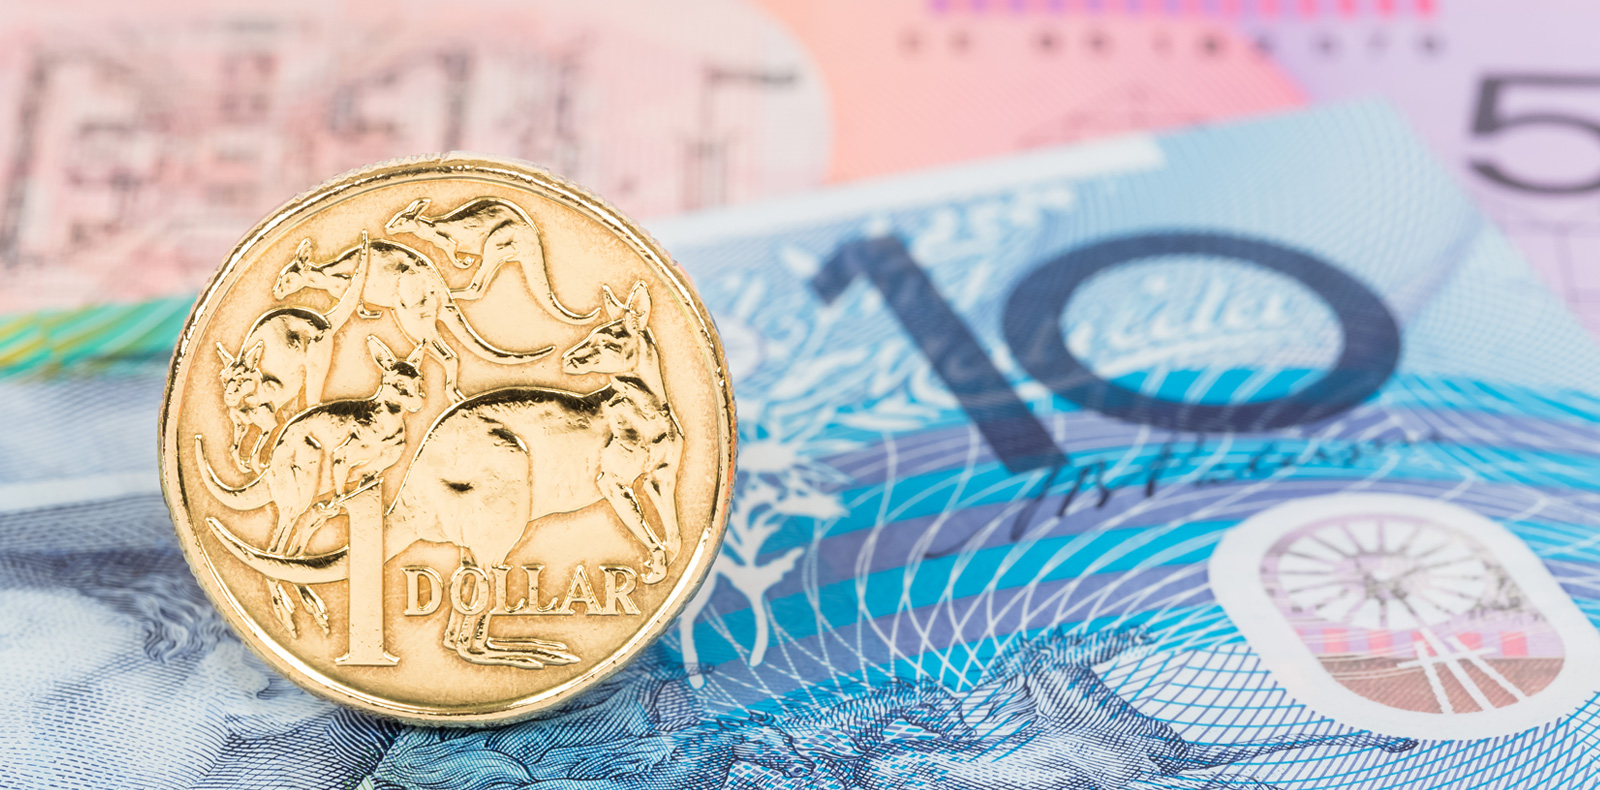 Australian Dollar weakness due to external factors